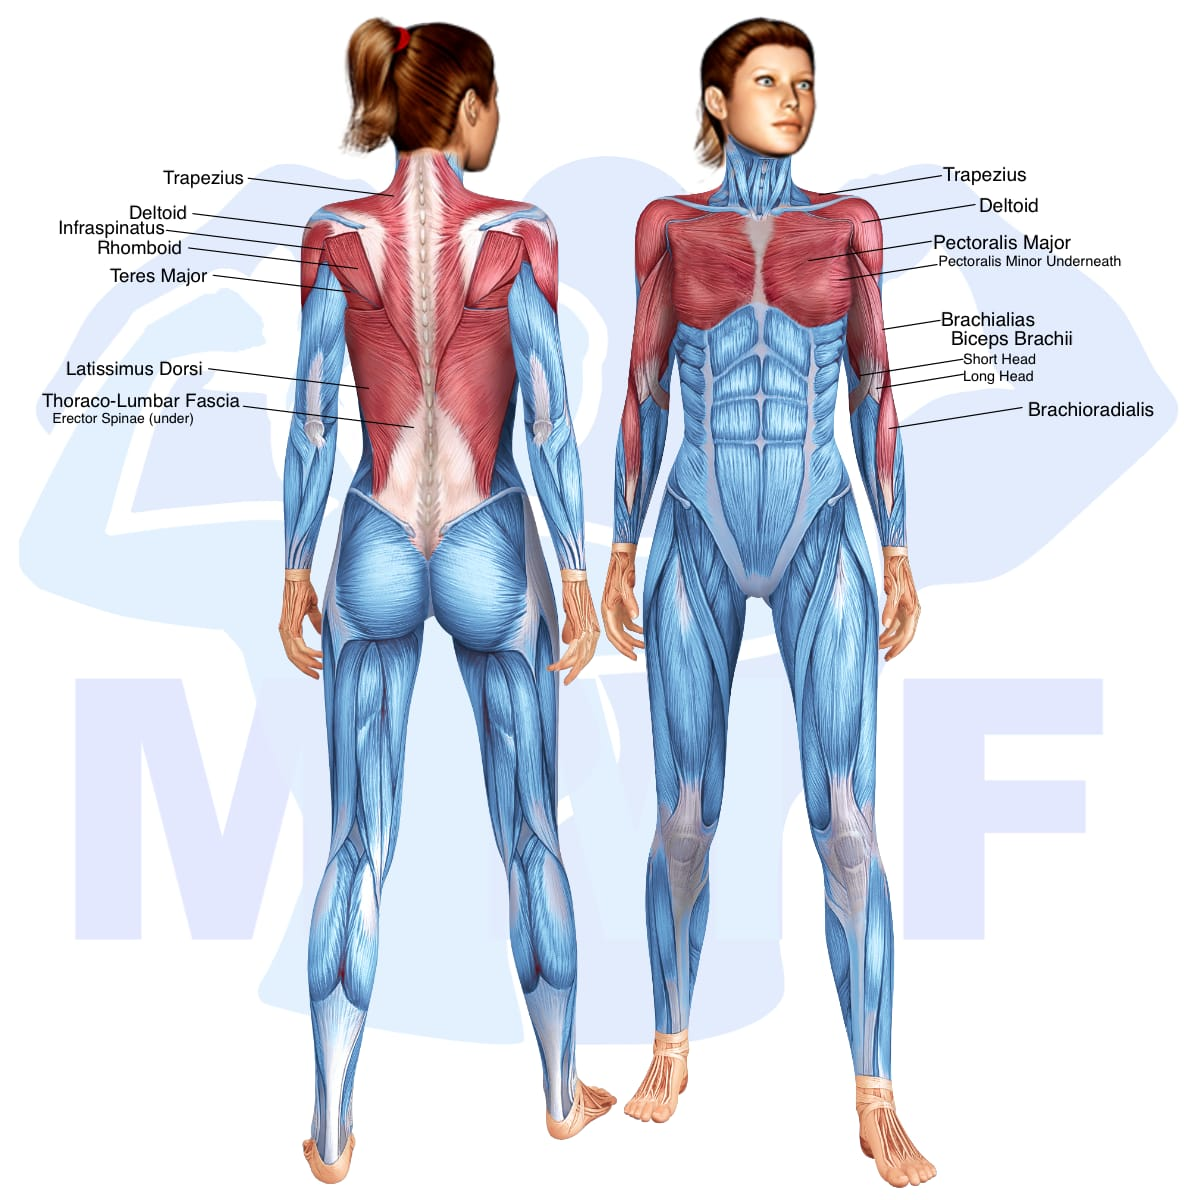 Skeletal muscle systems for a muscular woman, with muscles highlighted in red that are use during resistance band straight back seated rows.